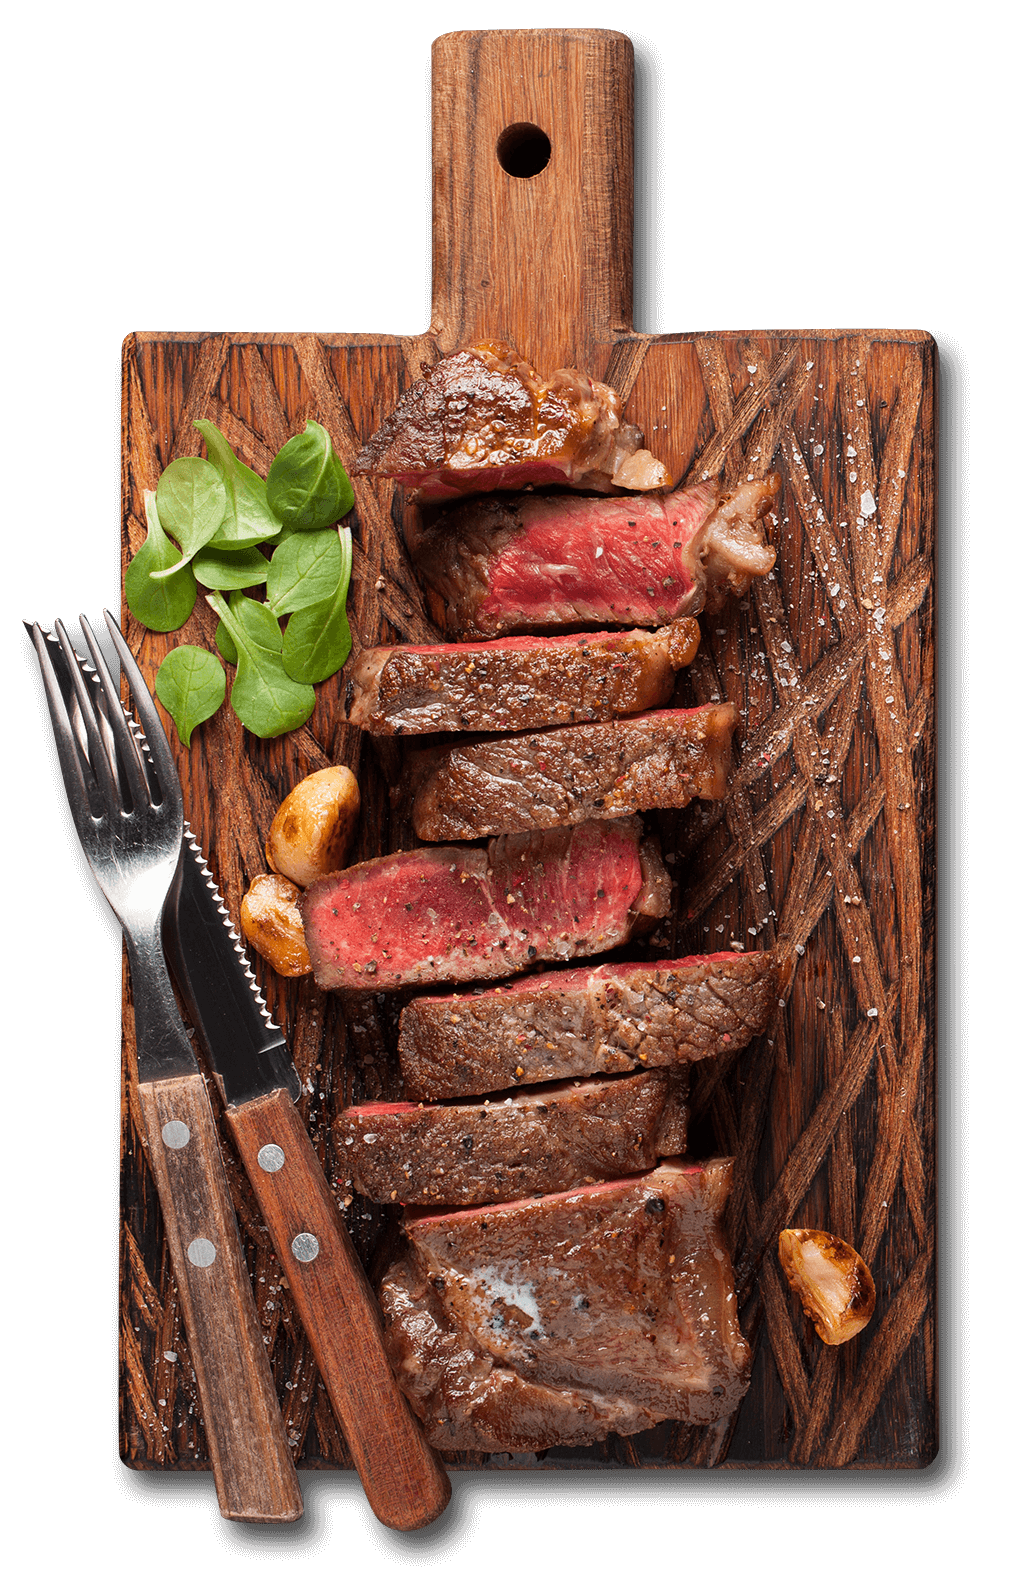 Saftiges Steak